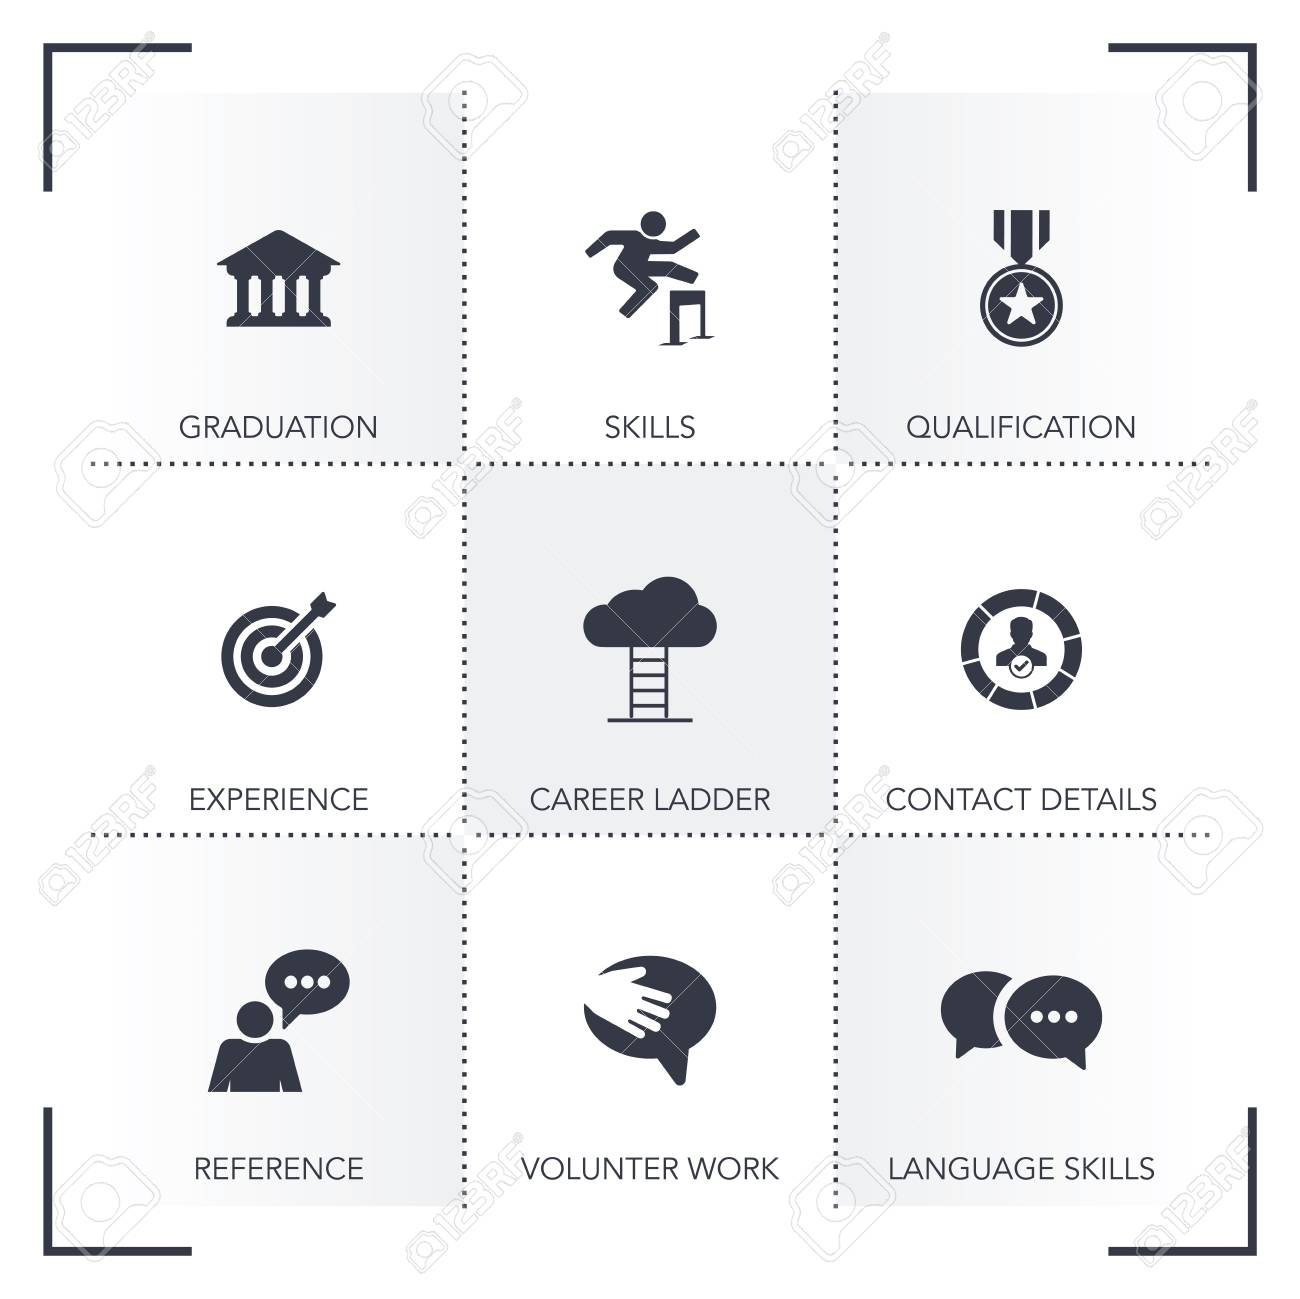 Curriculum Vitae Icon Set Royalty Free Cliparts Vectors And Stock